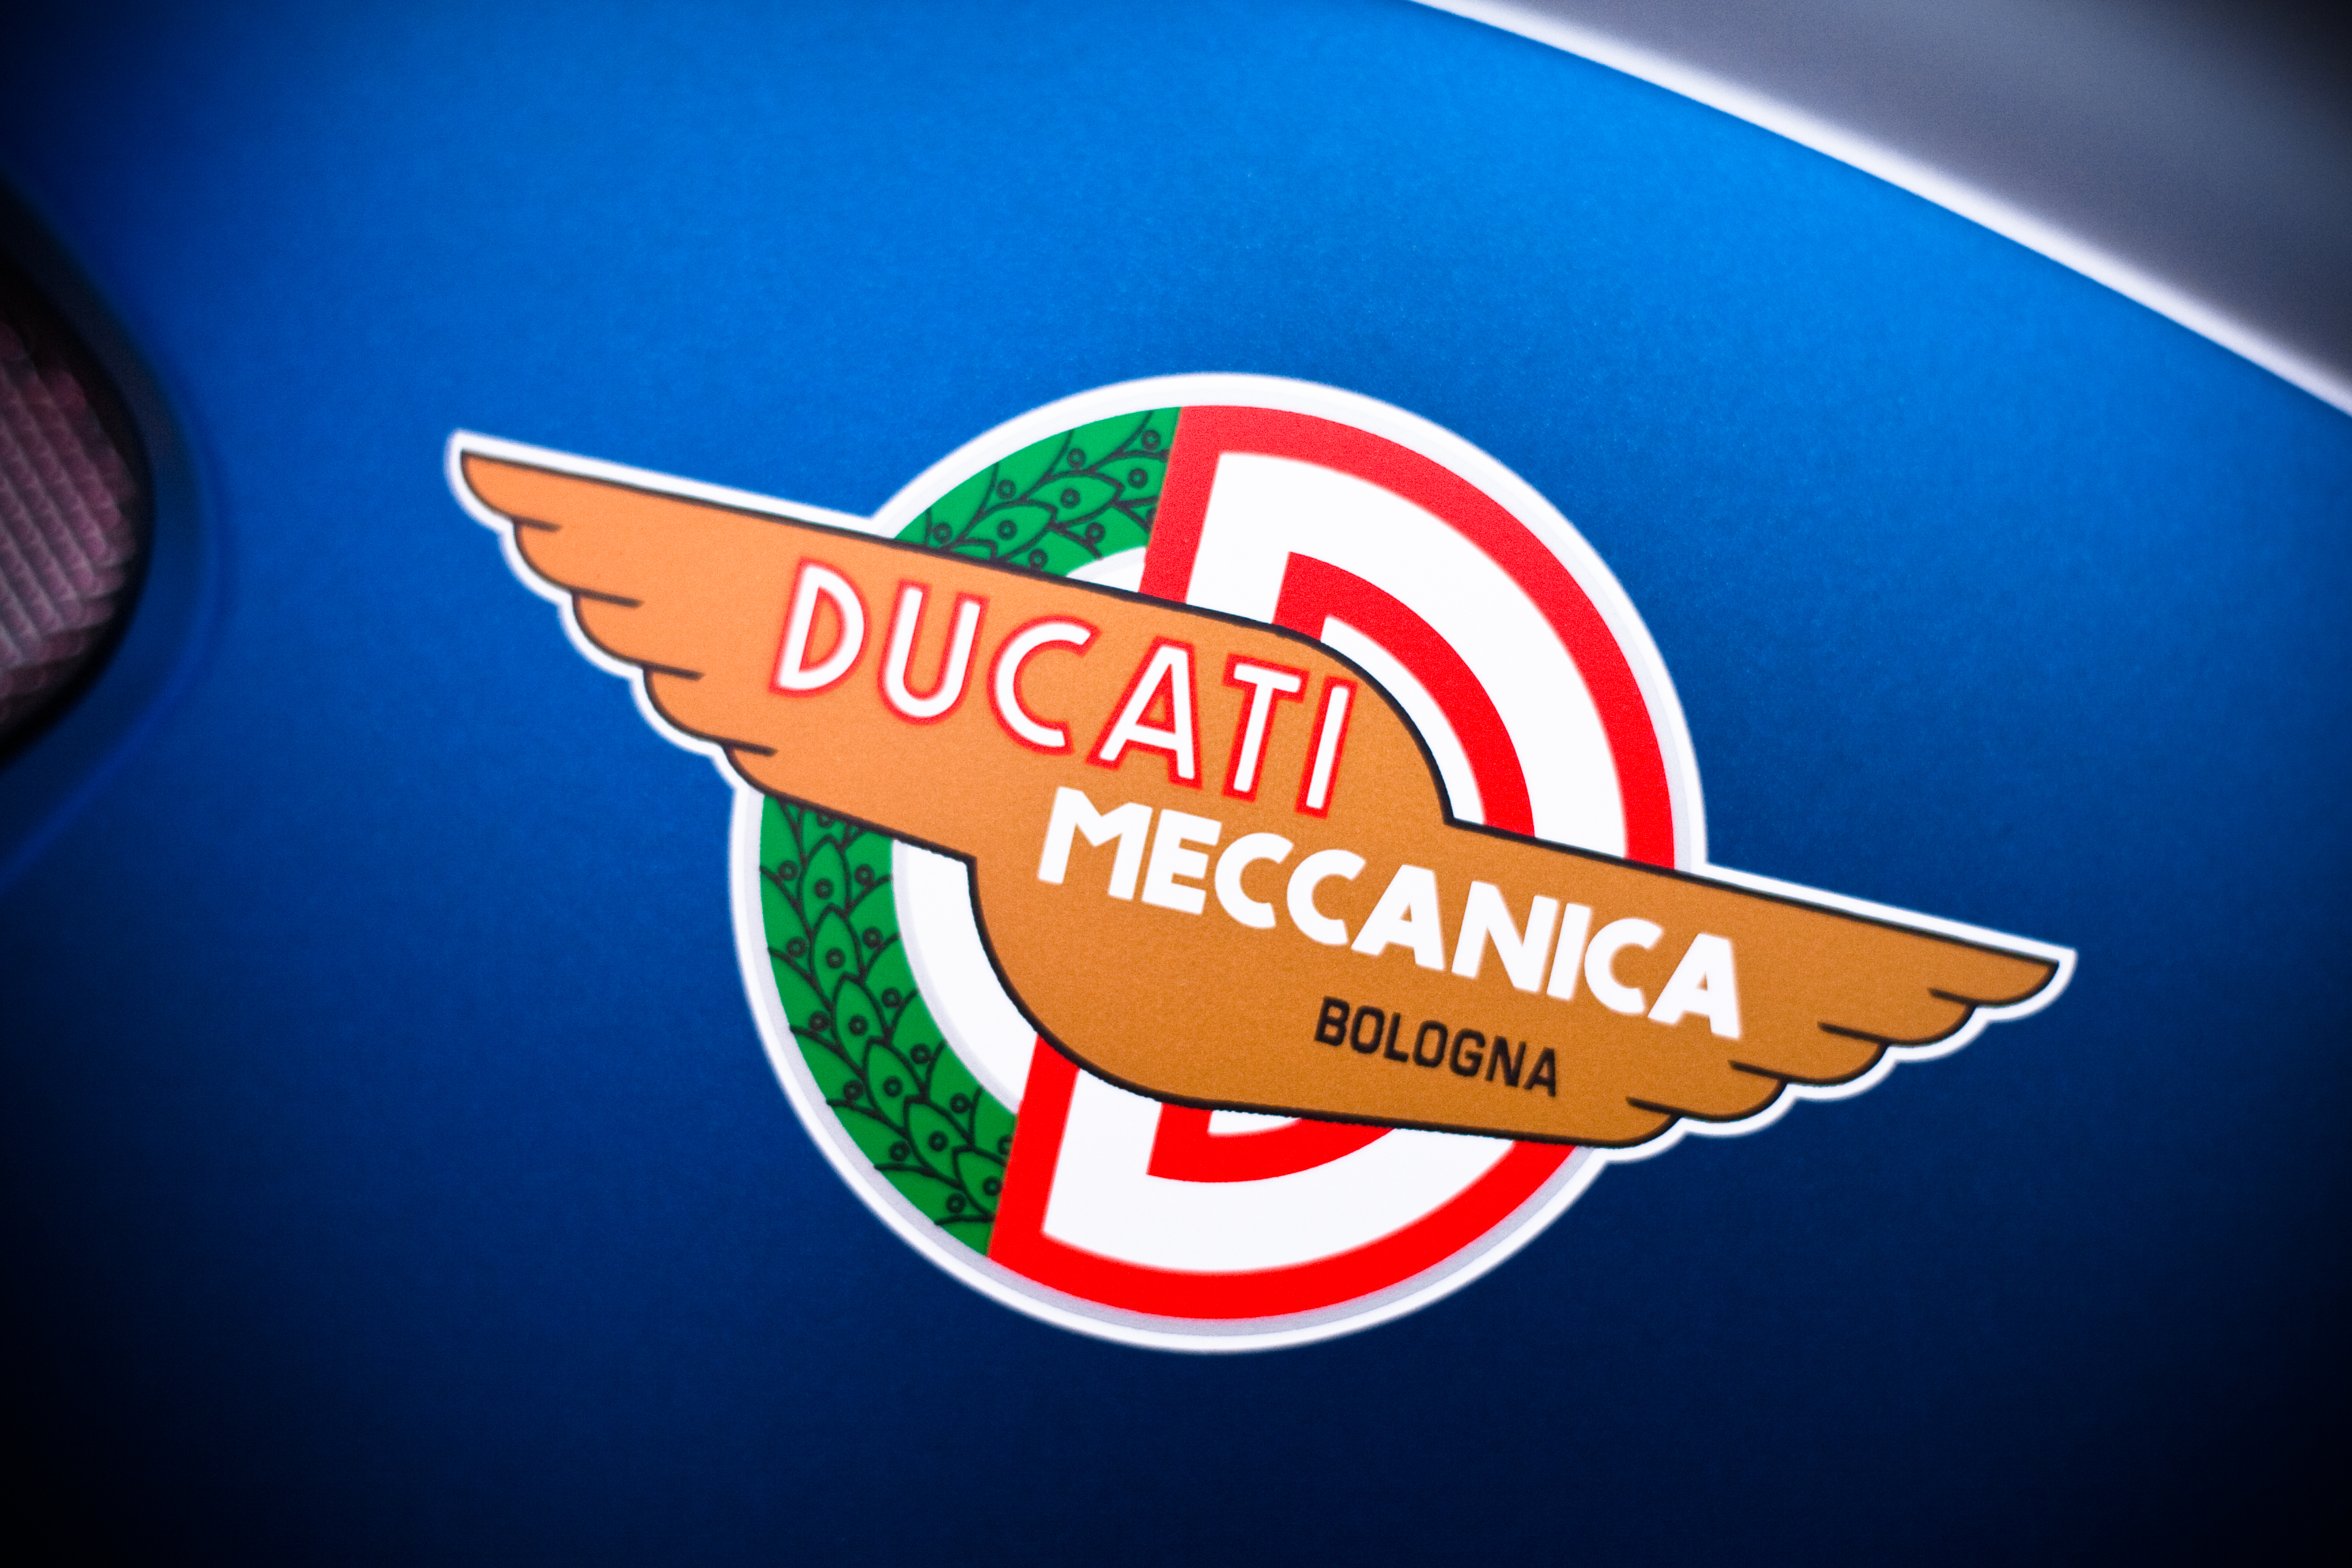 Ducati Monster Meccanica